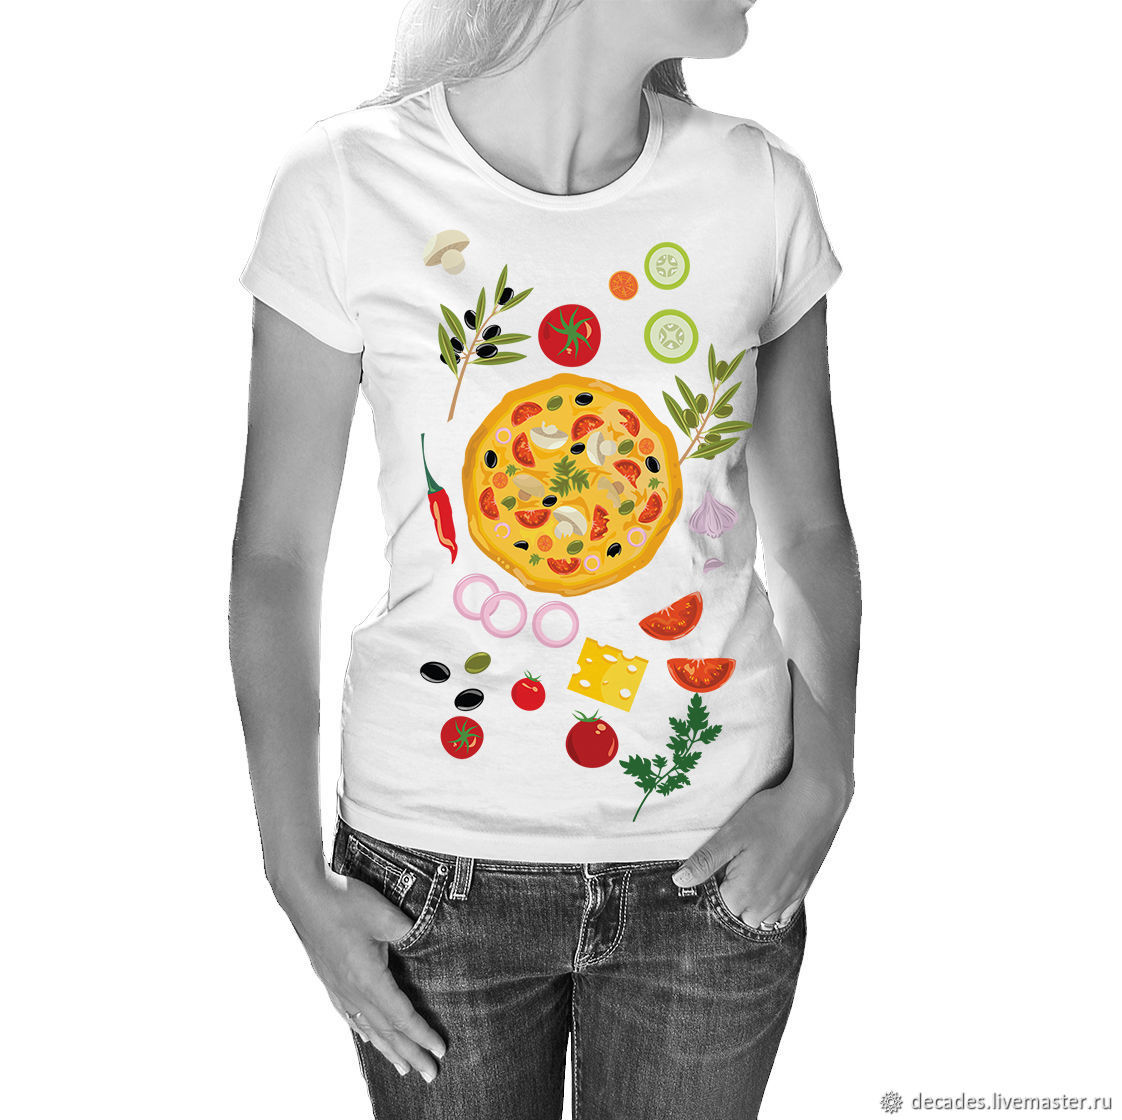 Pizza Party T-Shirt, T-shirts, Moscow,  Фото №1